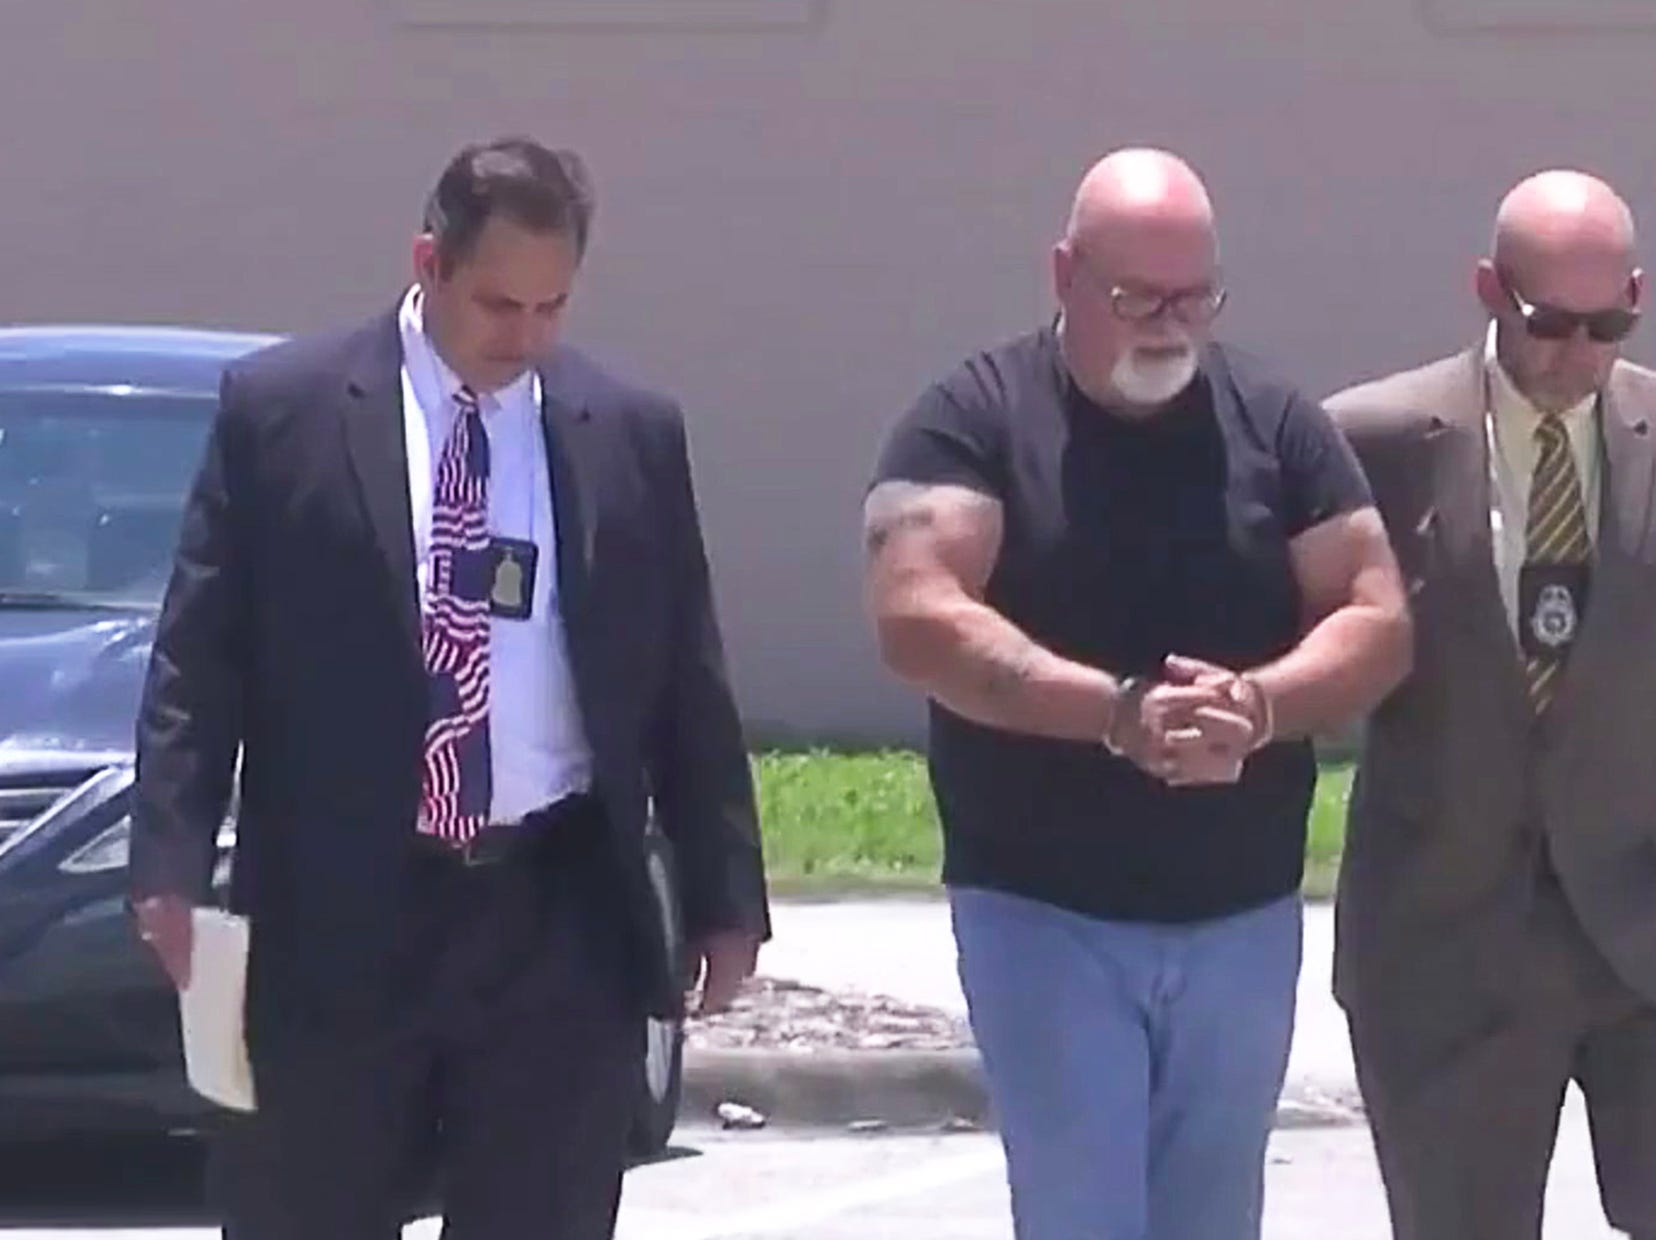 Former Palm Bay Deputy city manager Dave Isnardi being led into the Brevard County Detention Center Friday afternoon.  Photo courtesy WKMG News 6.